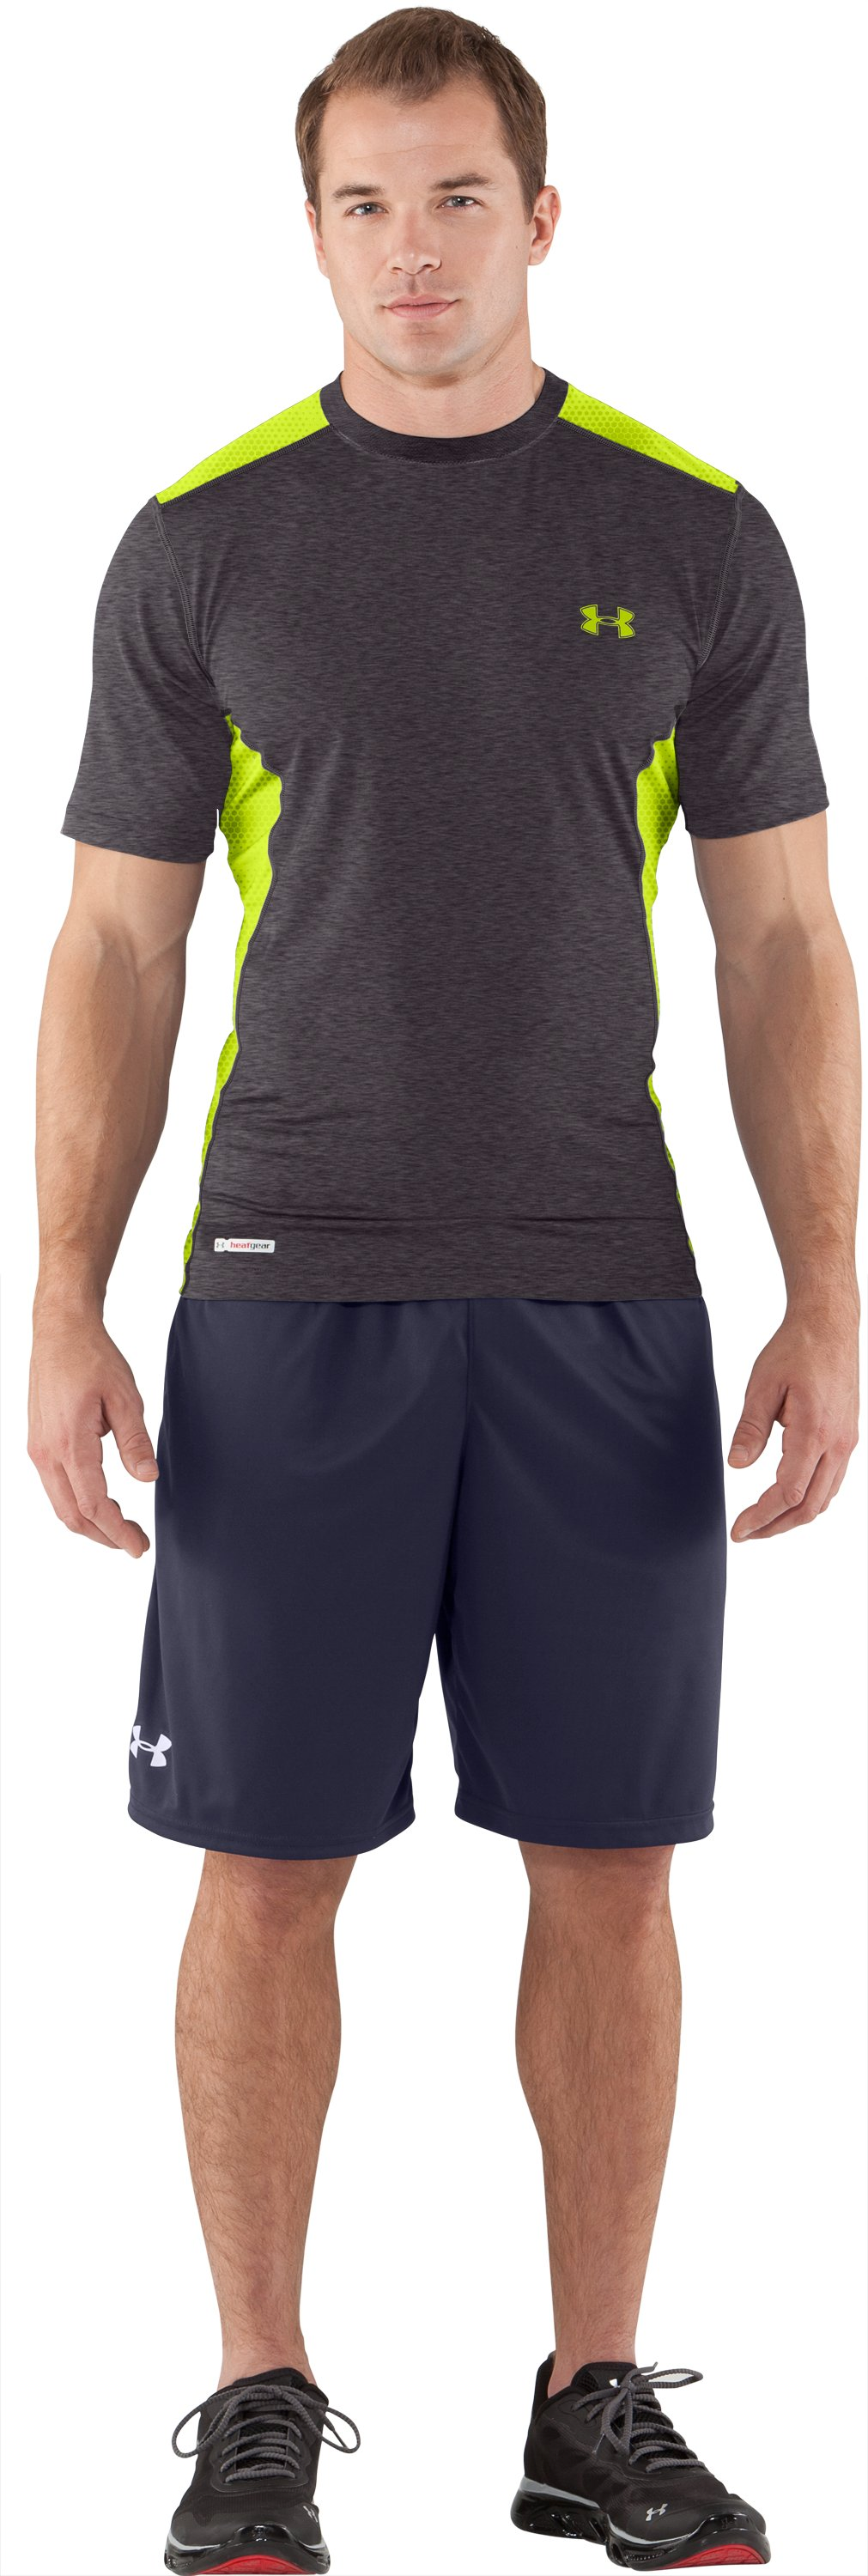 Men's HeatGear® Sonic Printed Fitted Short Sleeve, Carbon Heather